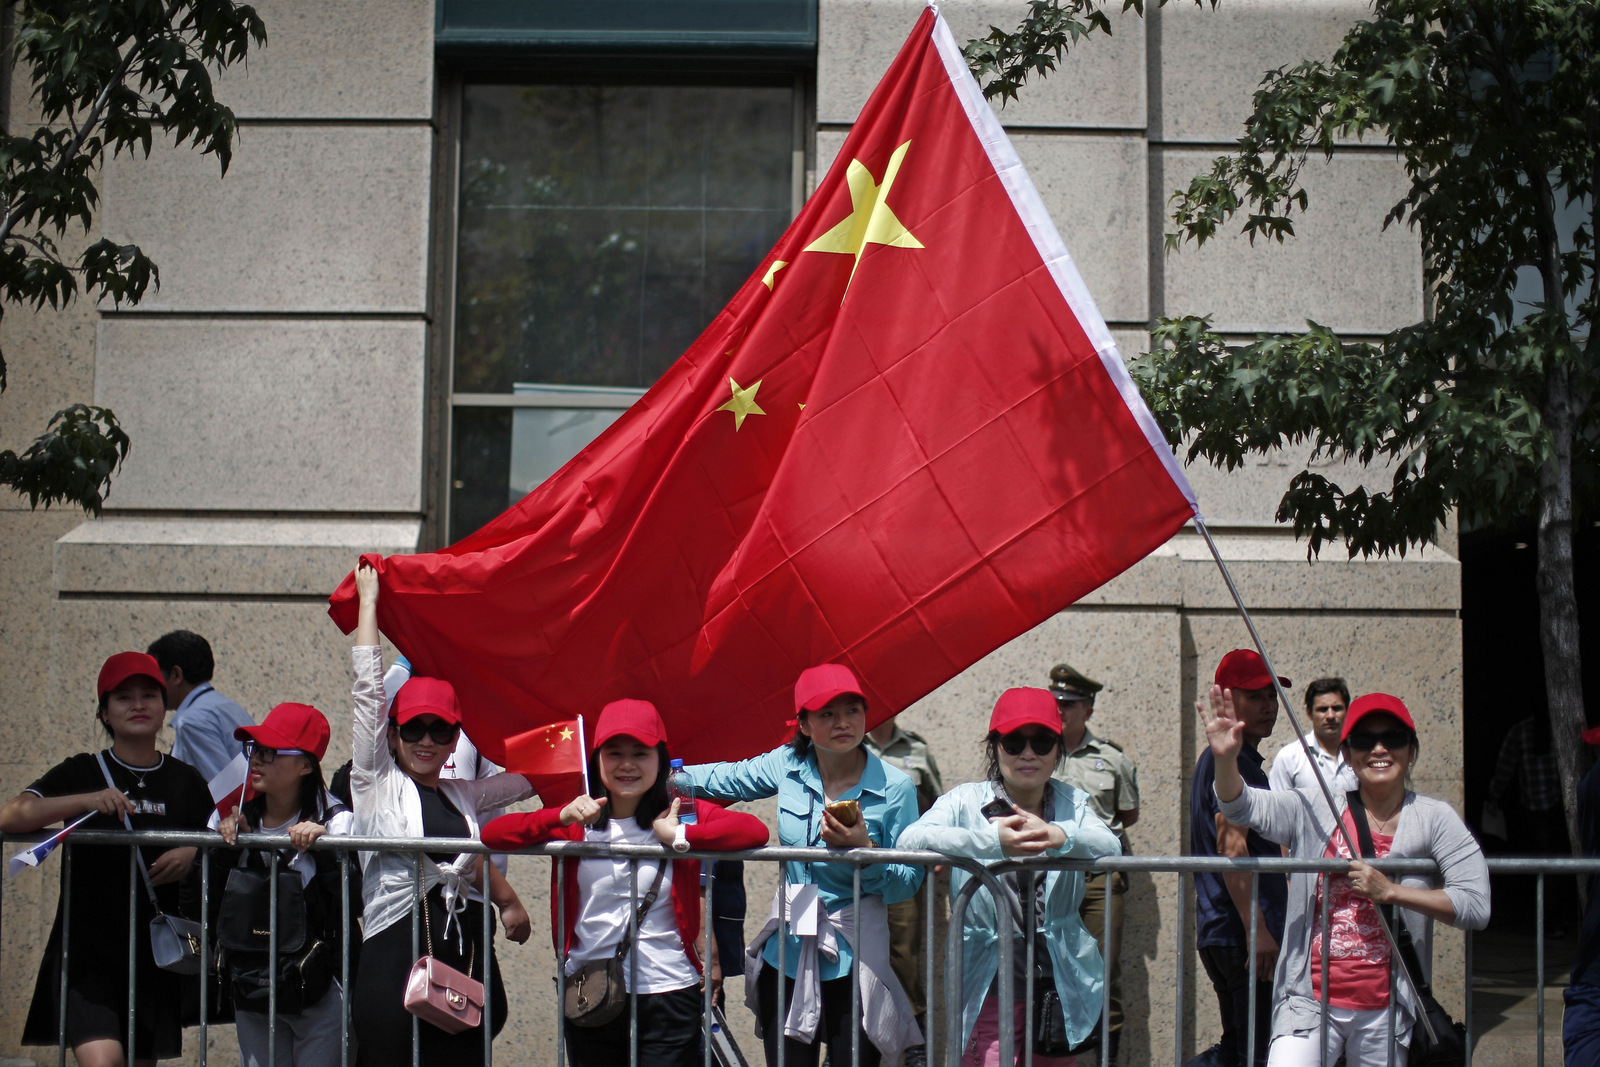 Members of the Chinese community living in Chile await the arrival of China's President Xi Jinping outside La Moneda presidential palace in Santiago, Chile, Tuesday, Nov. 22, 2016. Jinping is in Chile after attending the APEC summit in Peru. (AP Photo/Luis Hidalgo)